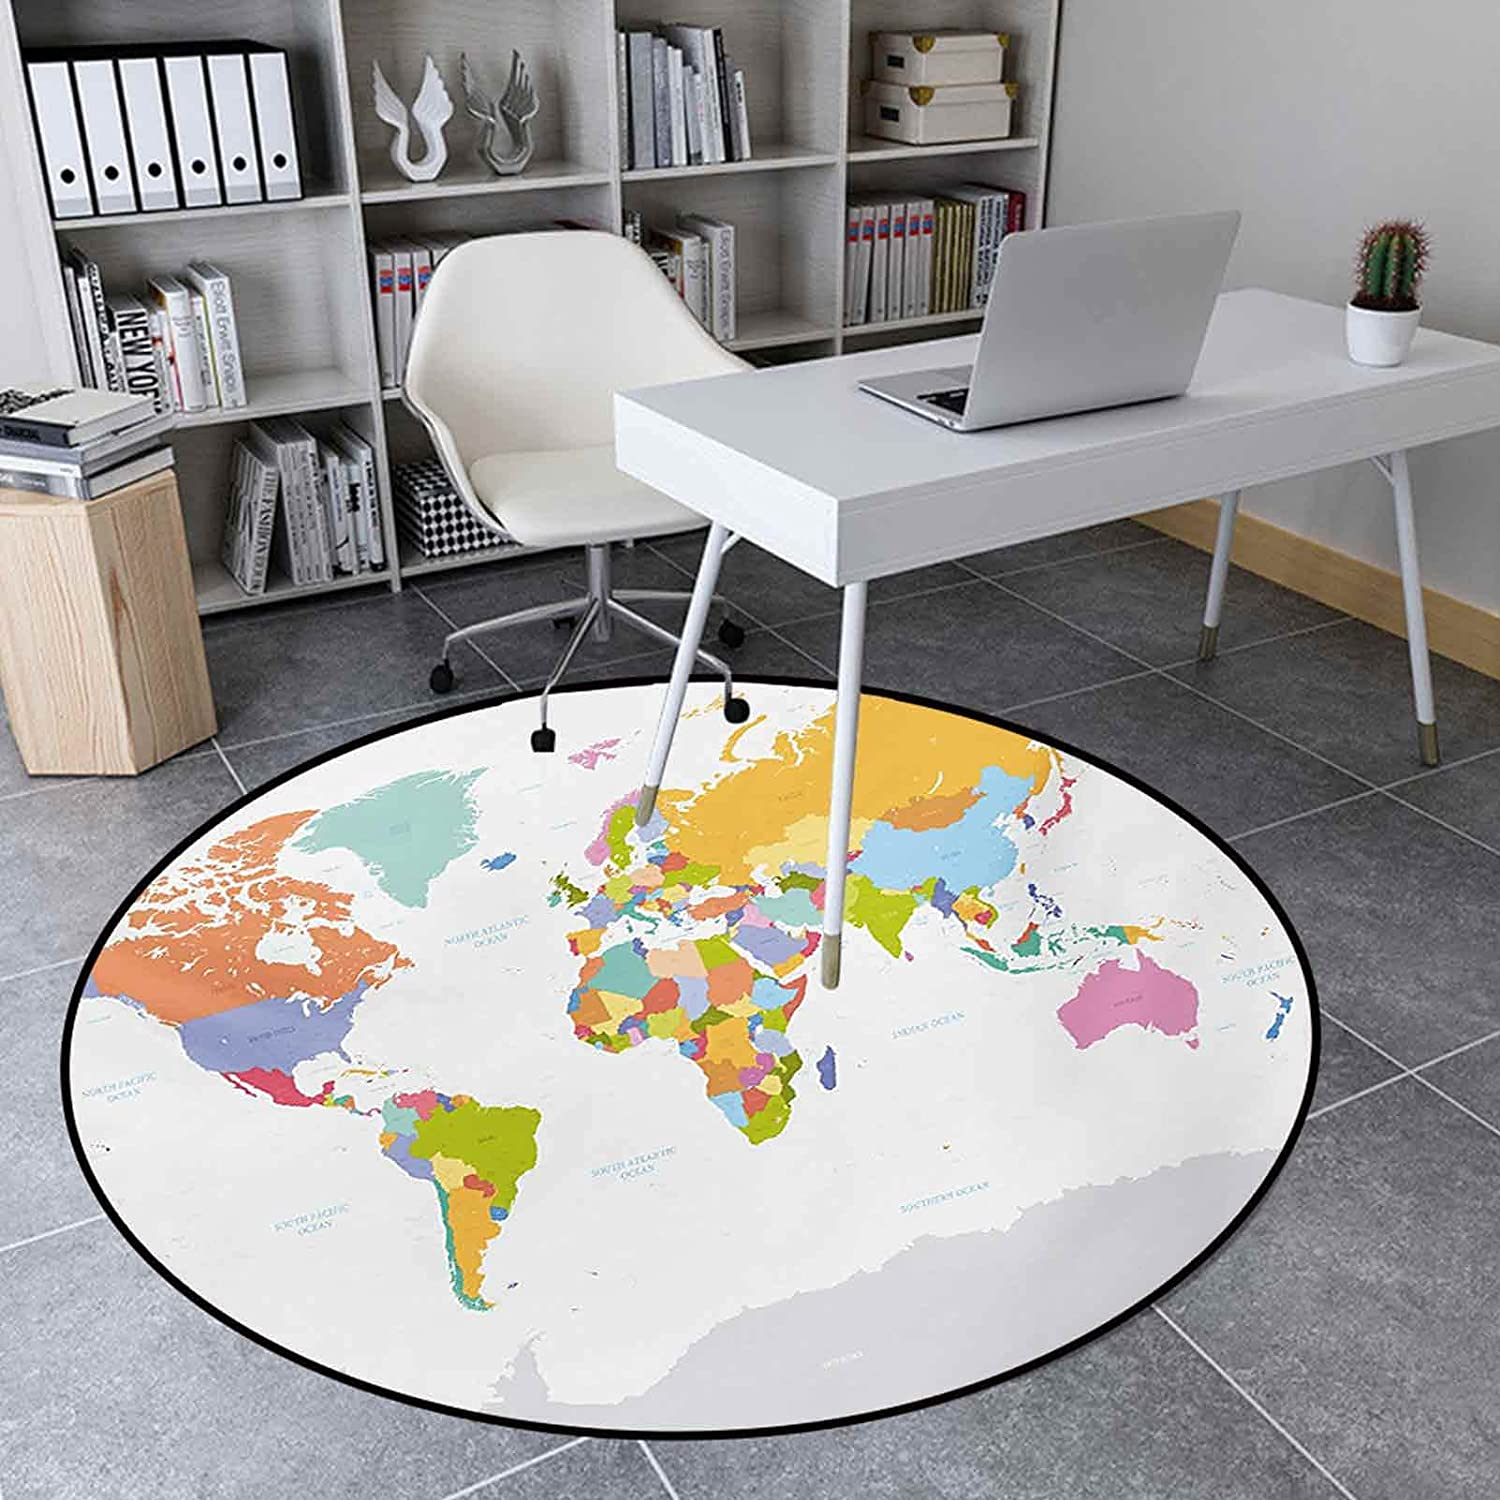 Round Area Rugs 2.95 Ft Non-Slip Floor Mat Home Decor, Highly Detailed Political Map of The World Global Positioning System Graphic Colorful, Multicolor